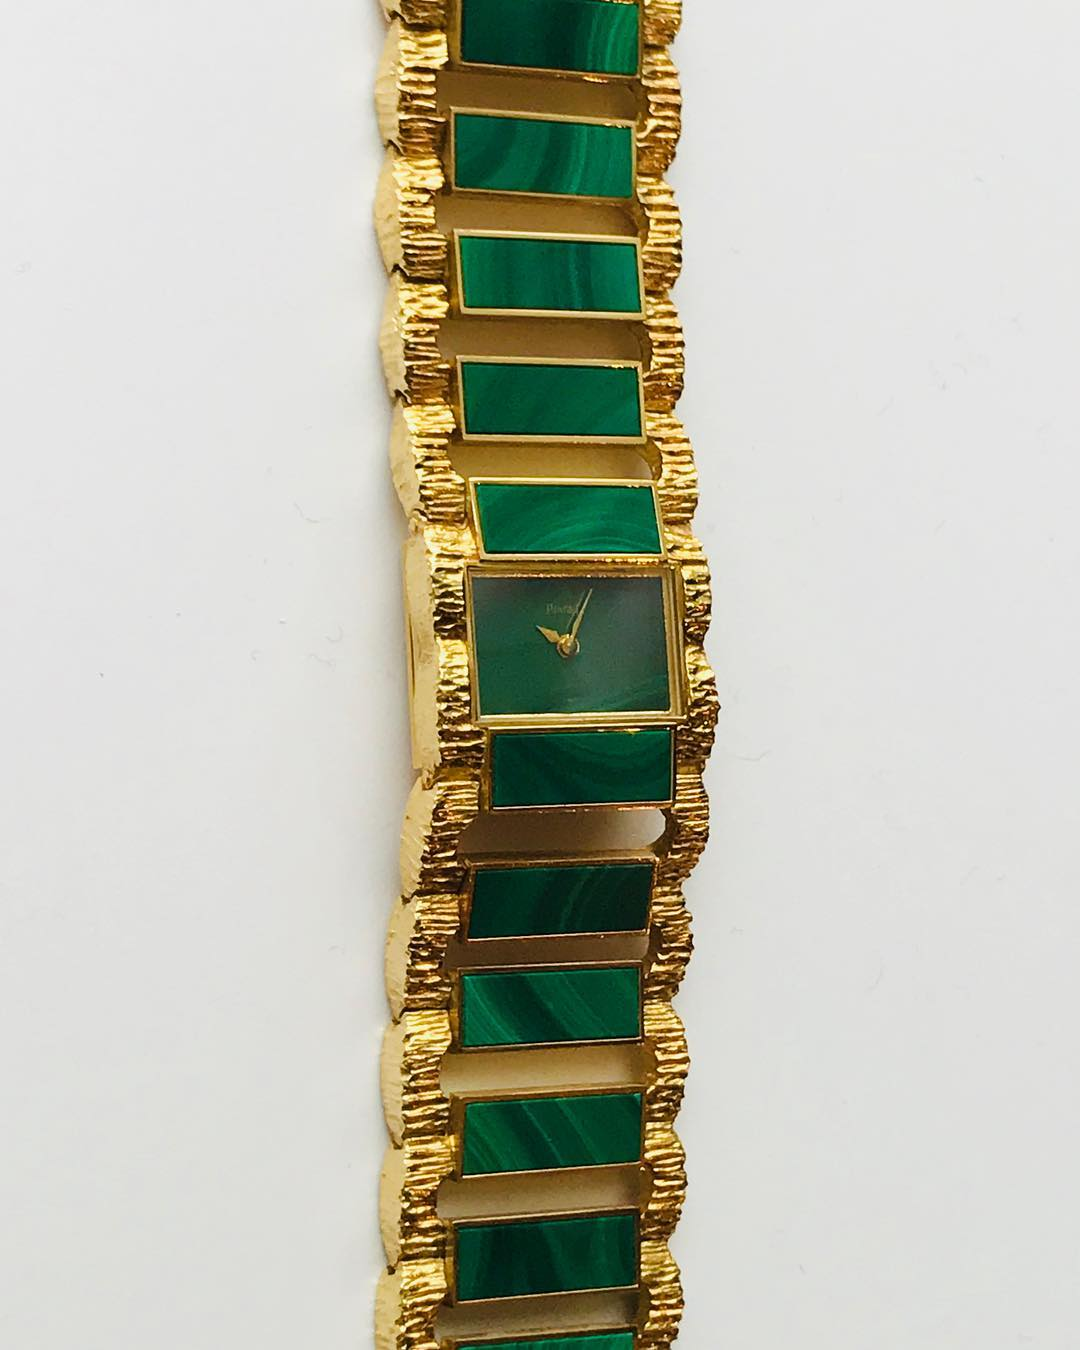 15 vintage @piaget watches in «Le temps est feminin» the upcoming auction @artcurial_watches including this one in #malachite. To see on 16 and 18 december @artcurial__ Did you know? At this occasion the iconic #jackiekennedy Piaget watch is exhibited.  ___________ #artcurialparis @marie.anselot @alexandradub @madlyne_c #rondpointdeschampselysees #todoinparis #parisexhibition #vintagepiaget #watchoftheday #piagetwatch #watchporn #seventiesstyle #letempsestfeminin